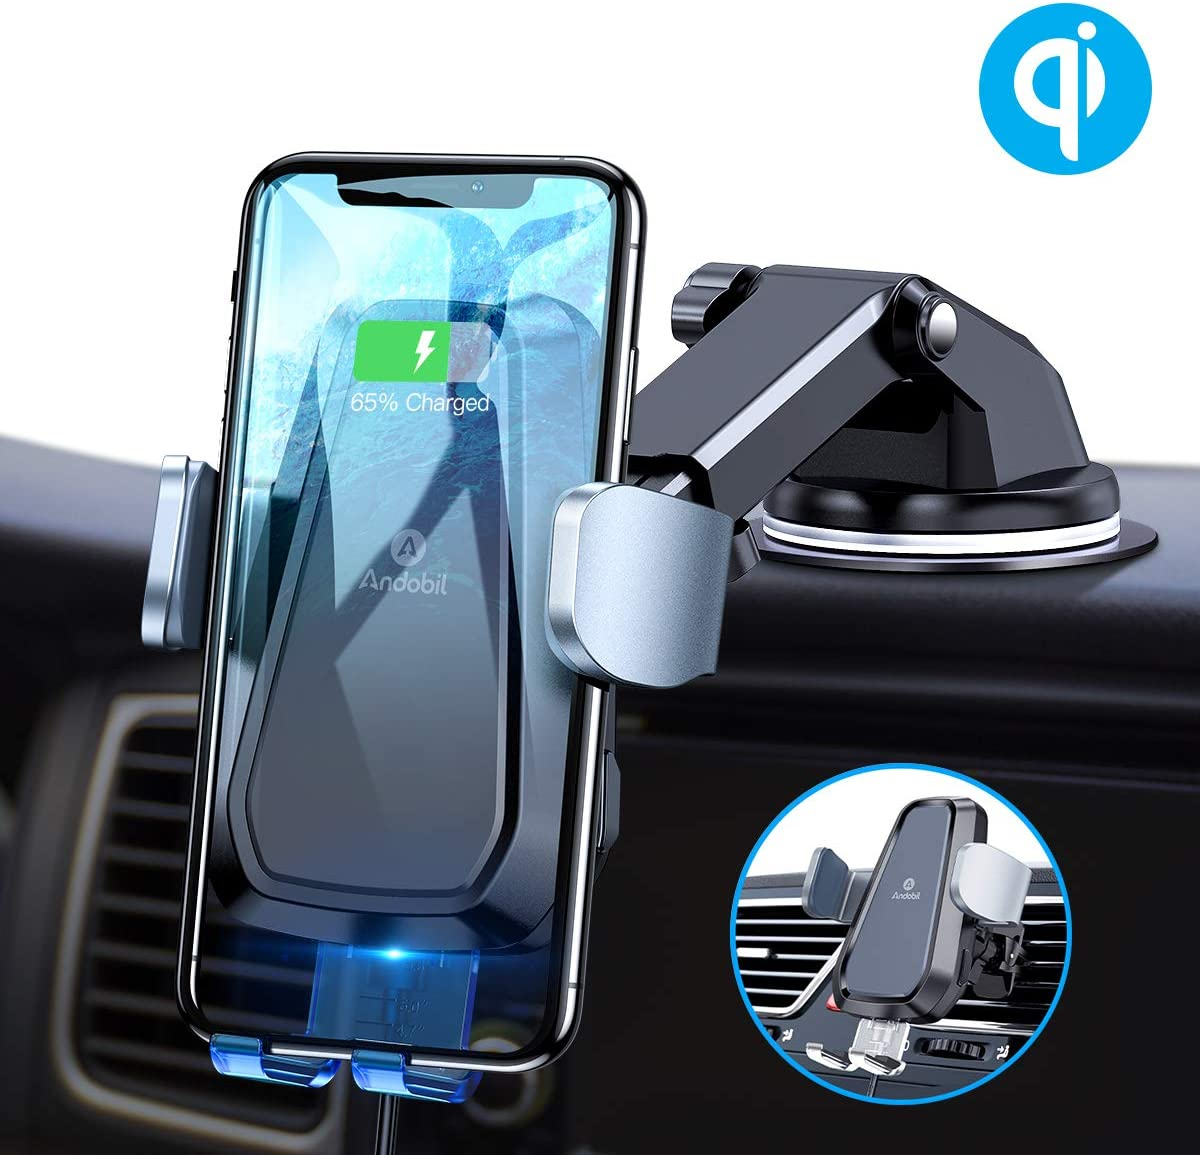 Andobil Wireless Car Charger, Qi Safe Fast Charging 10W7.5W Auto Clamping Car Wireless Charger Vent Dash Car Phone Holder for iPhone SE1111 Pro